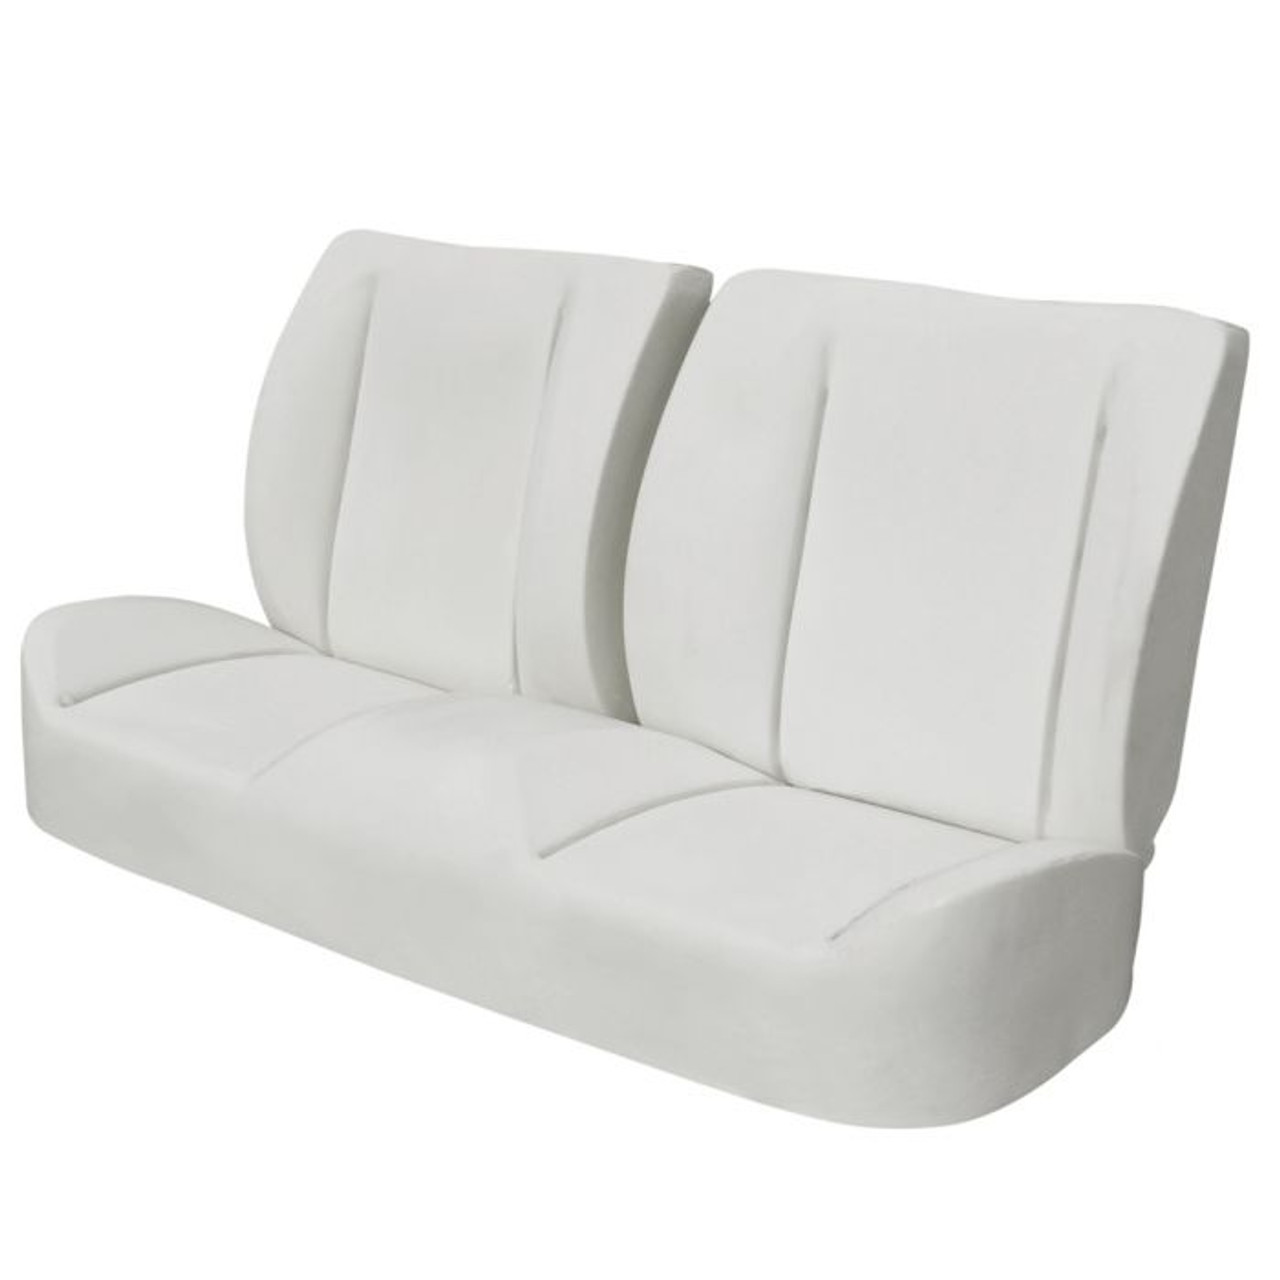 1964-70 Front Bench Seat Foam for TMI Sport Seat,